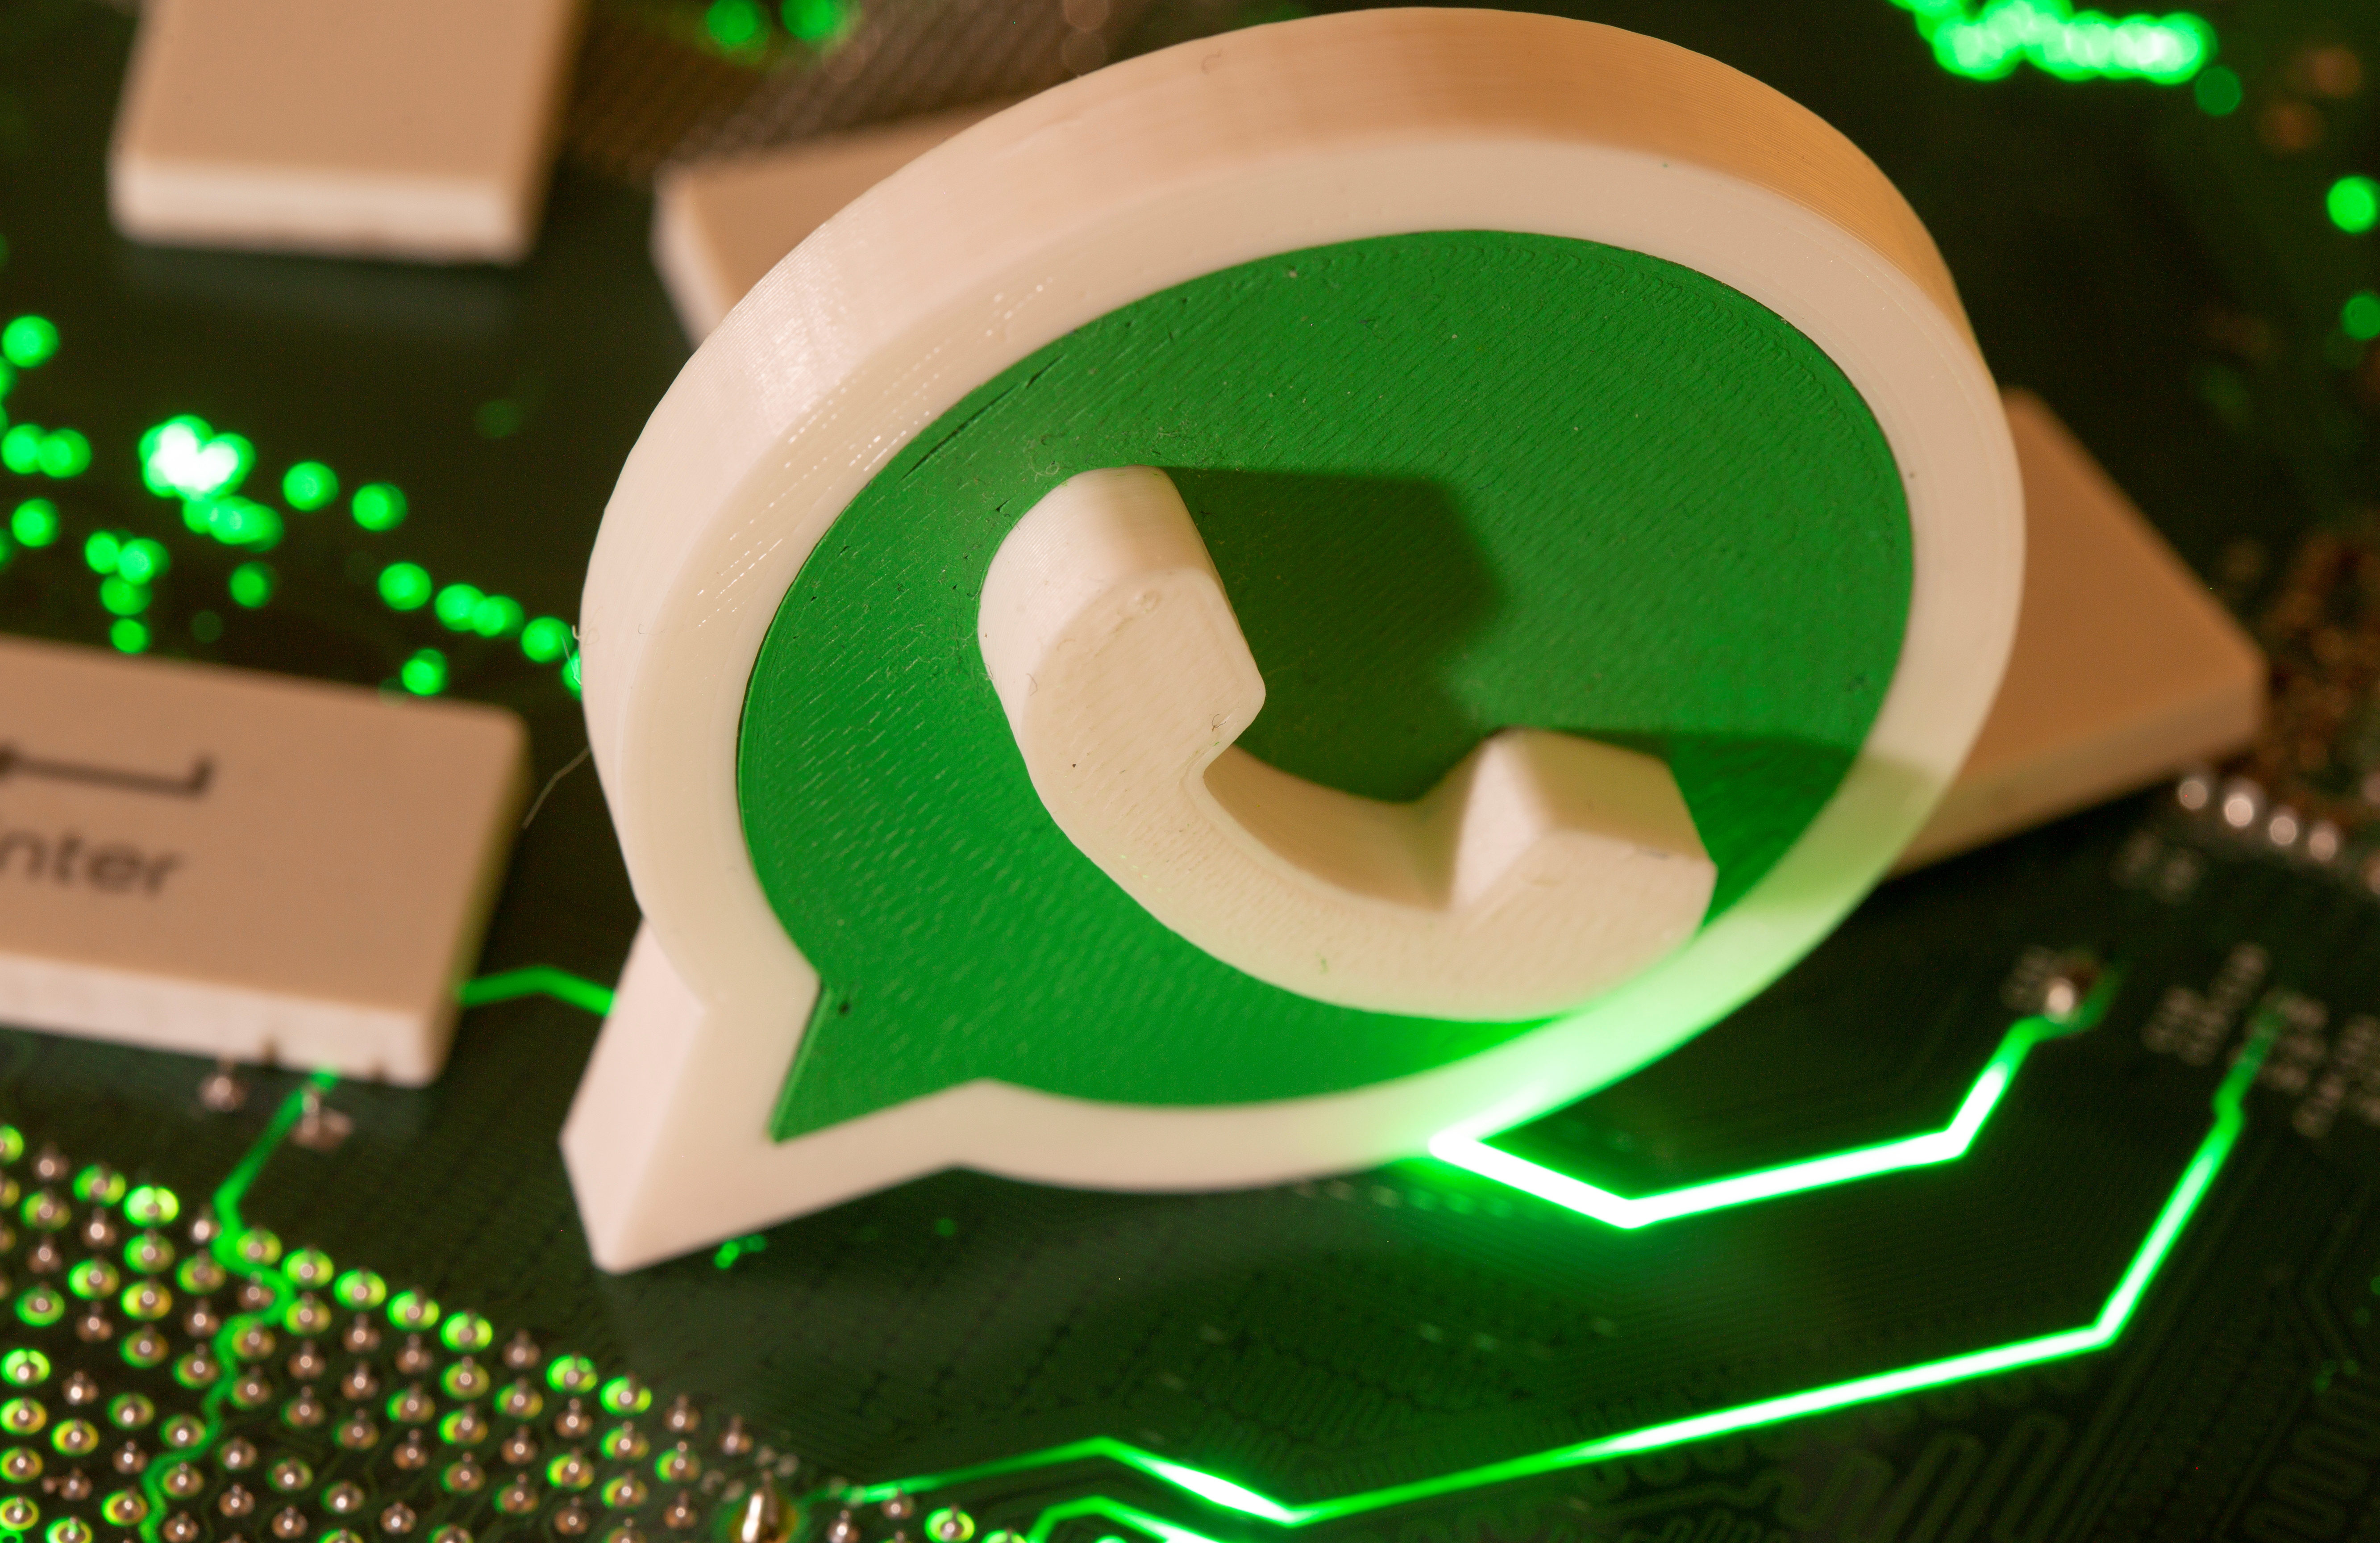 Archived WhatsApp chats will no longer come back to haunt you - Engadget